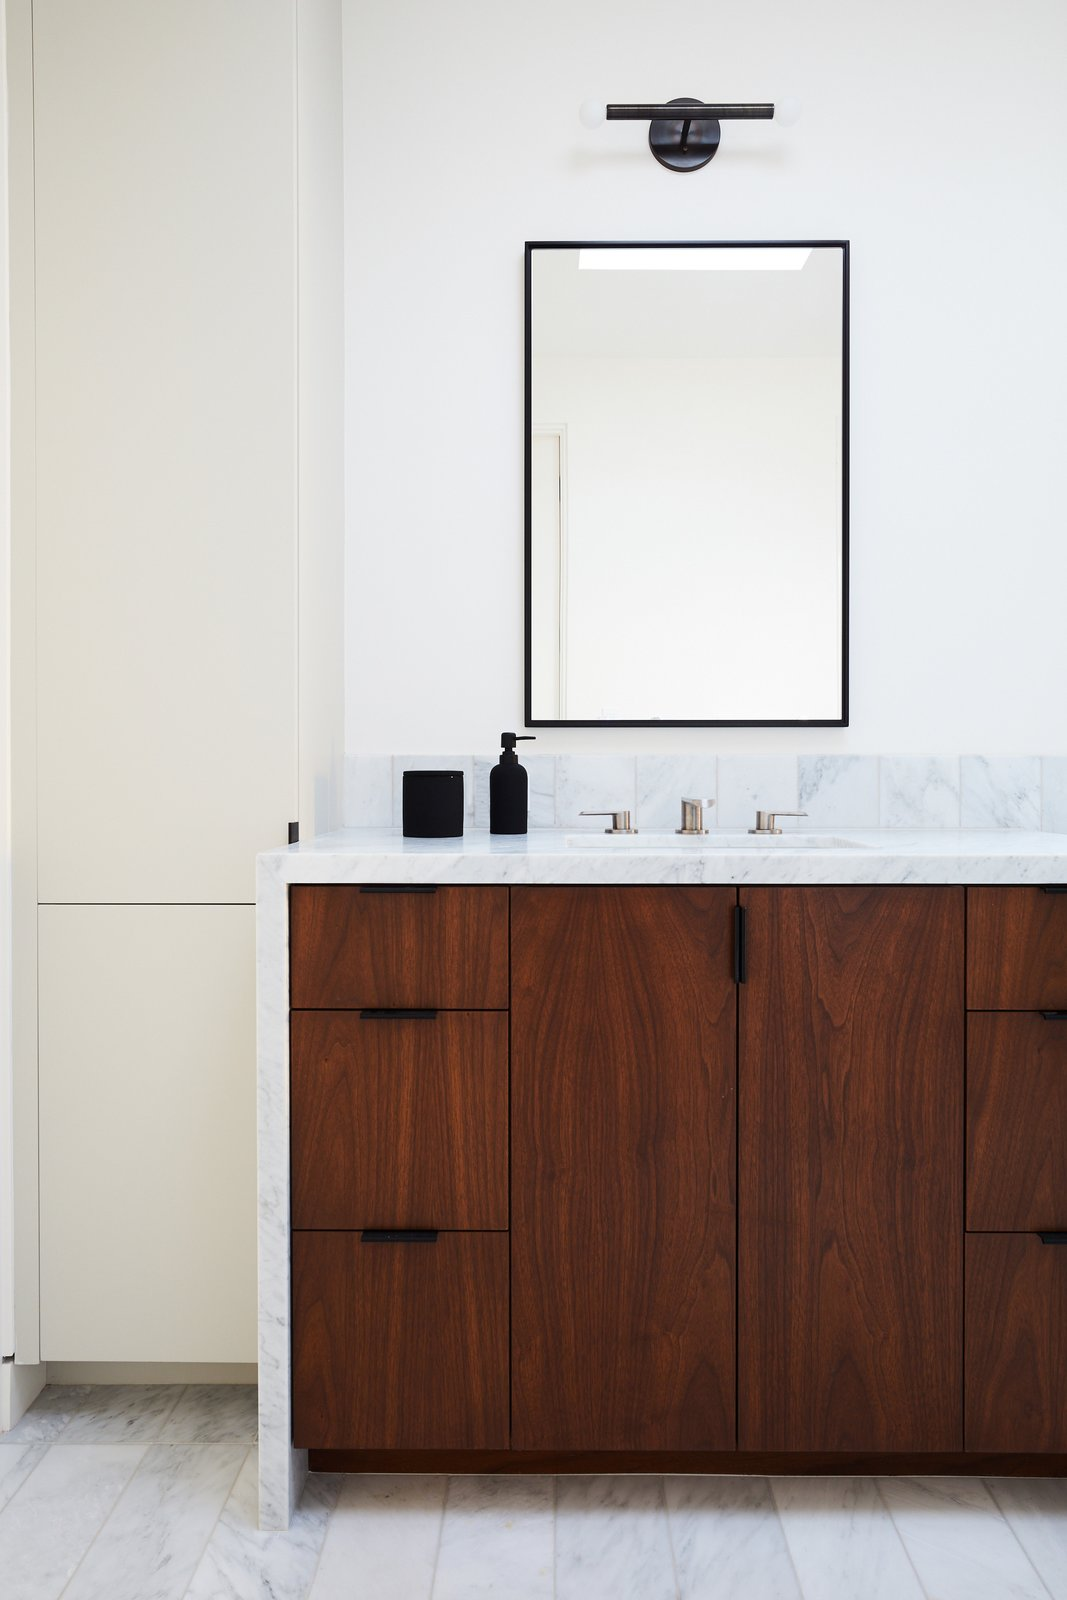 Bath Room, Wall Lighting, Marble Counter, Undermount Sink, and Marble Floor Primary Bathroom  The Strand Residence